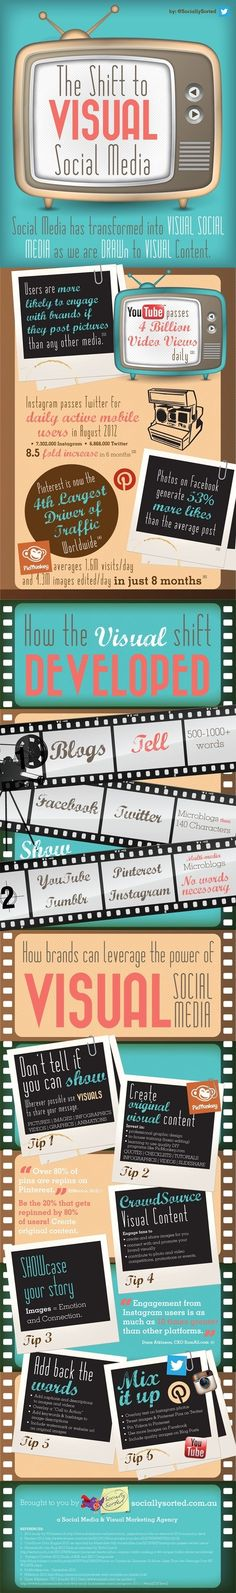 The Shift to Visual Social Media #infographic